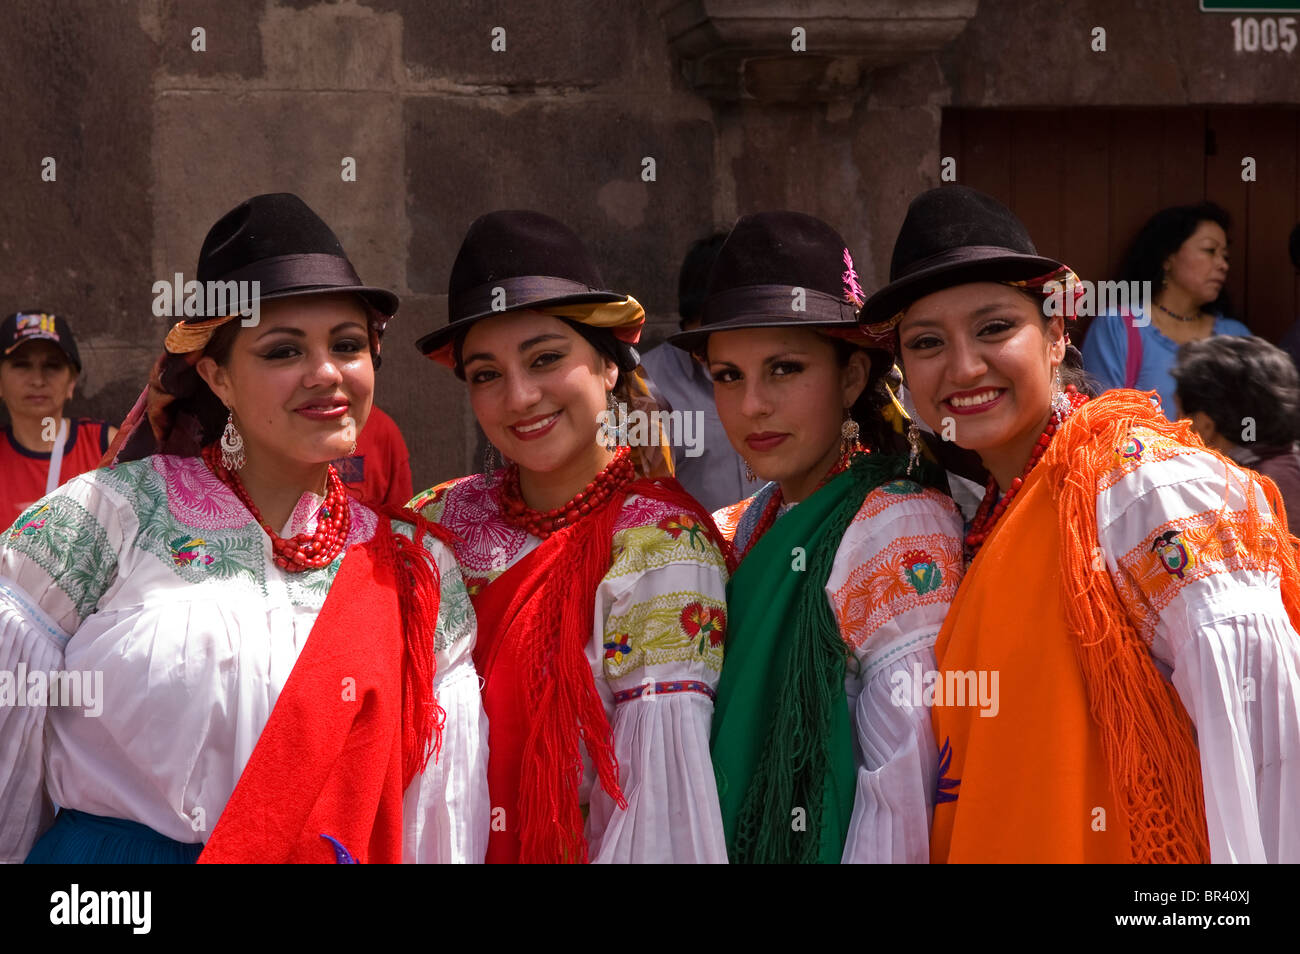 Ladies wearing traditional costume in Quito Ecuador  sc 1 st  Alamy & Ladies wearing traditional costume in Quito Ecuador Stock Photo ...